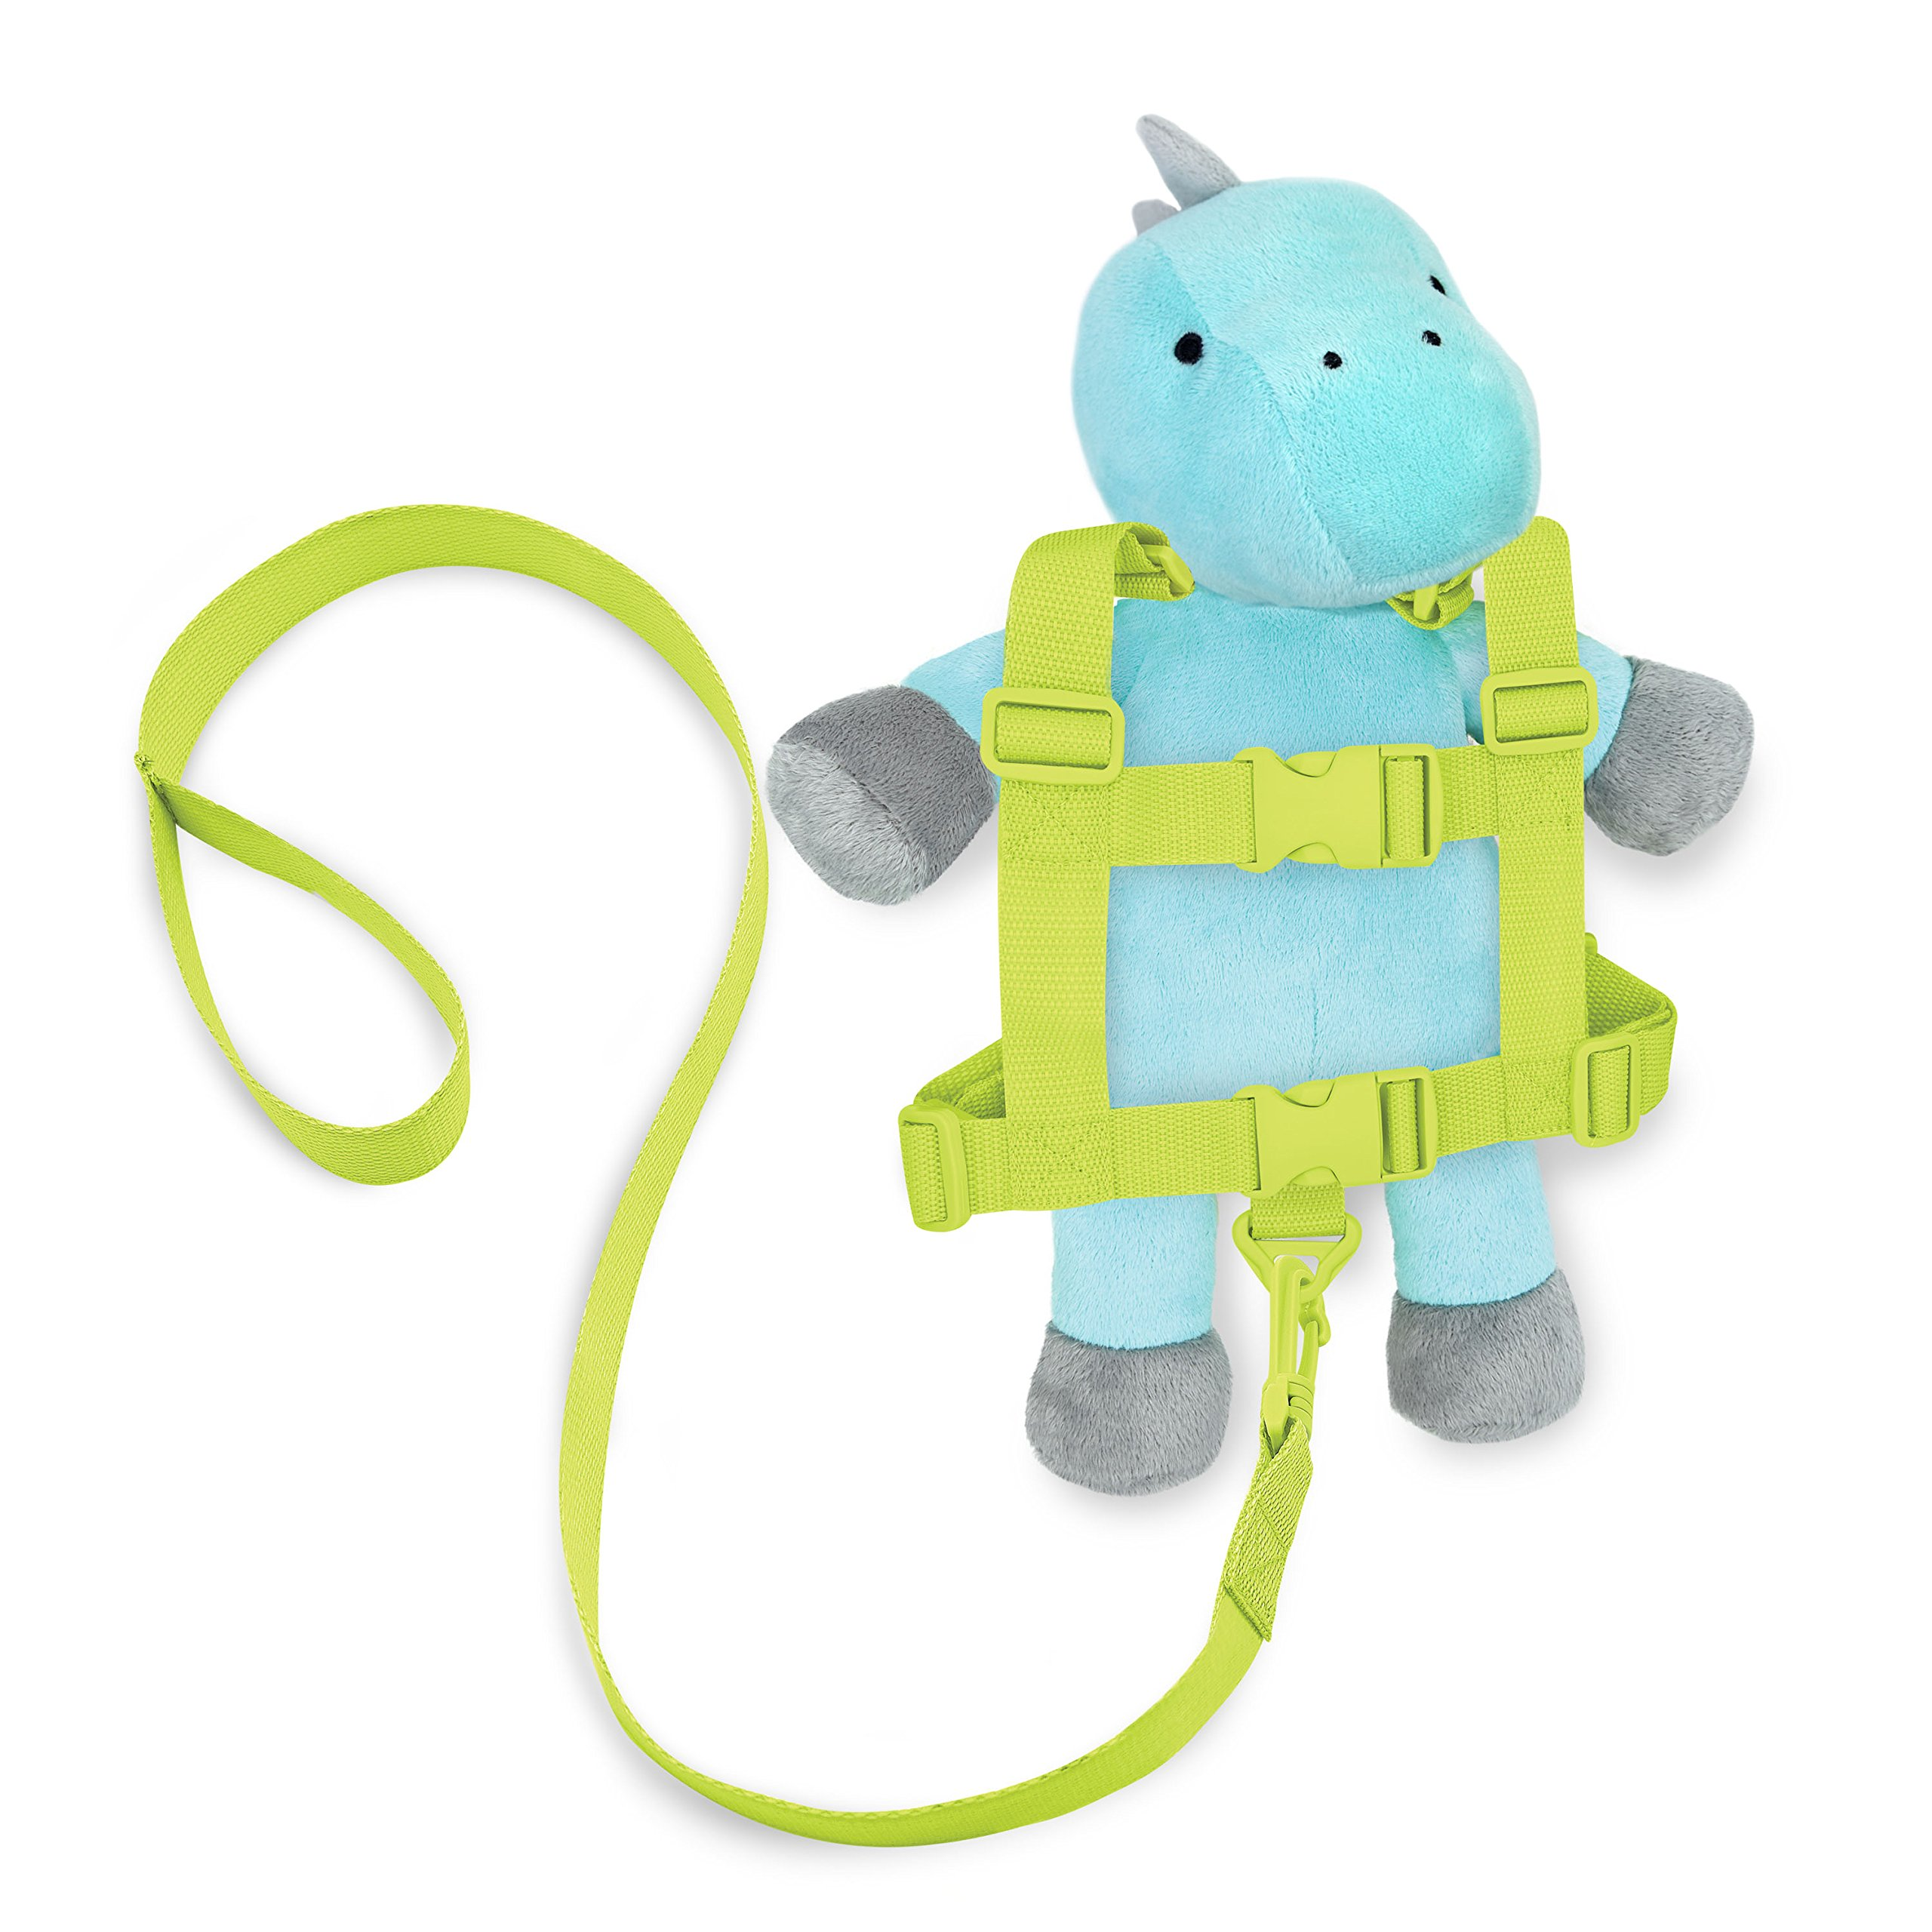 Travel Bug Toddler 2-in-1 Safety Harness, Dinosaur- Teal/Grey